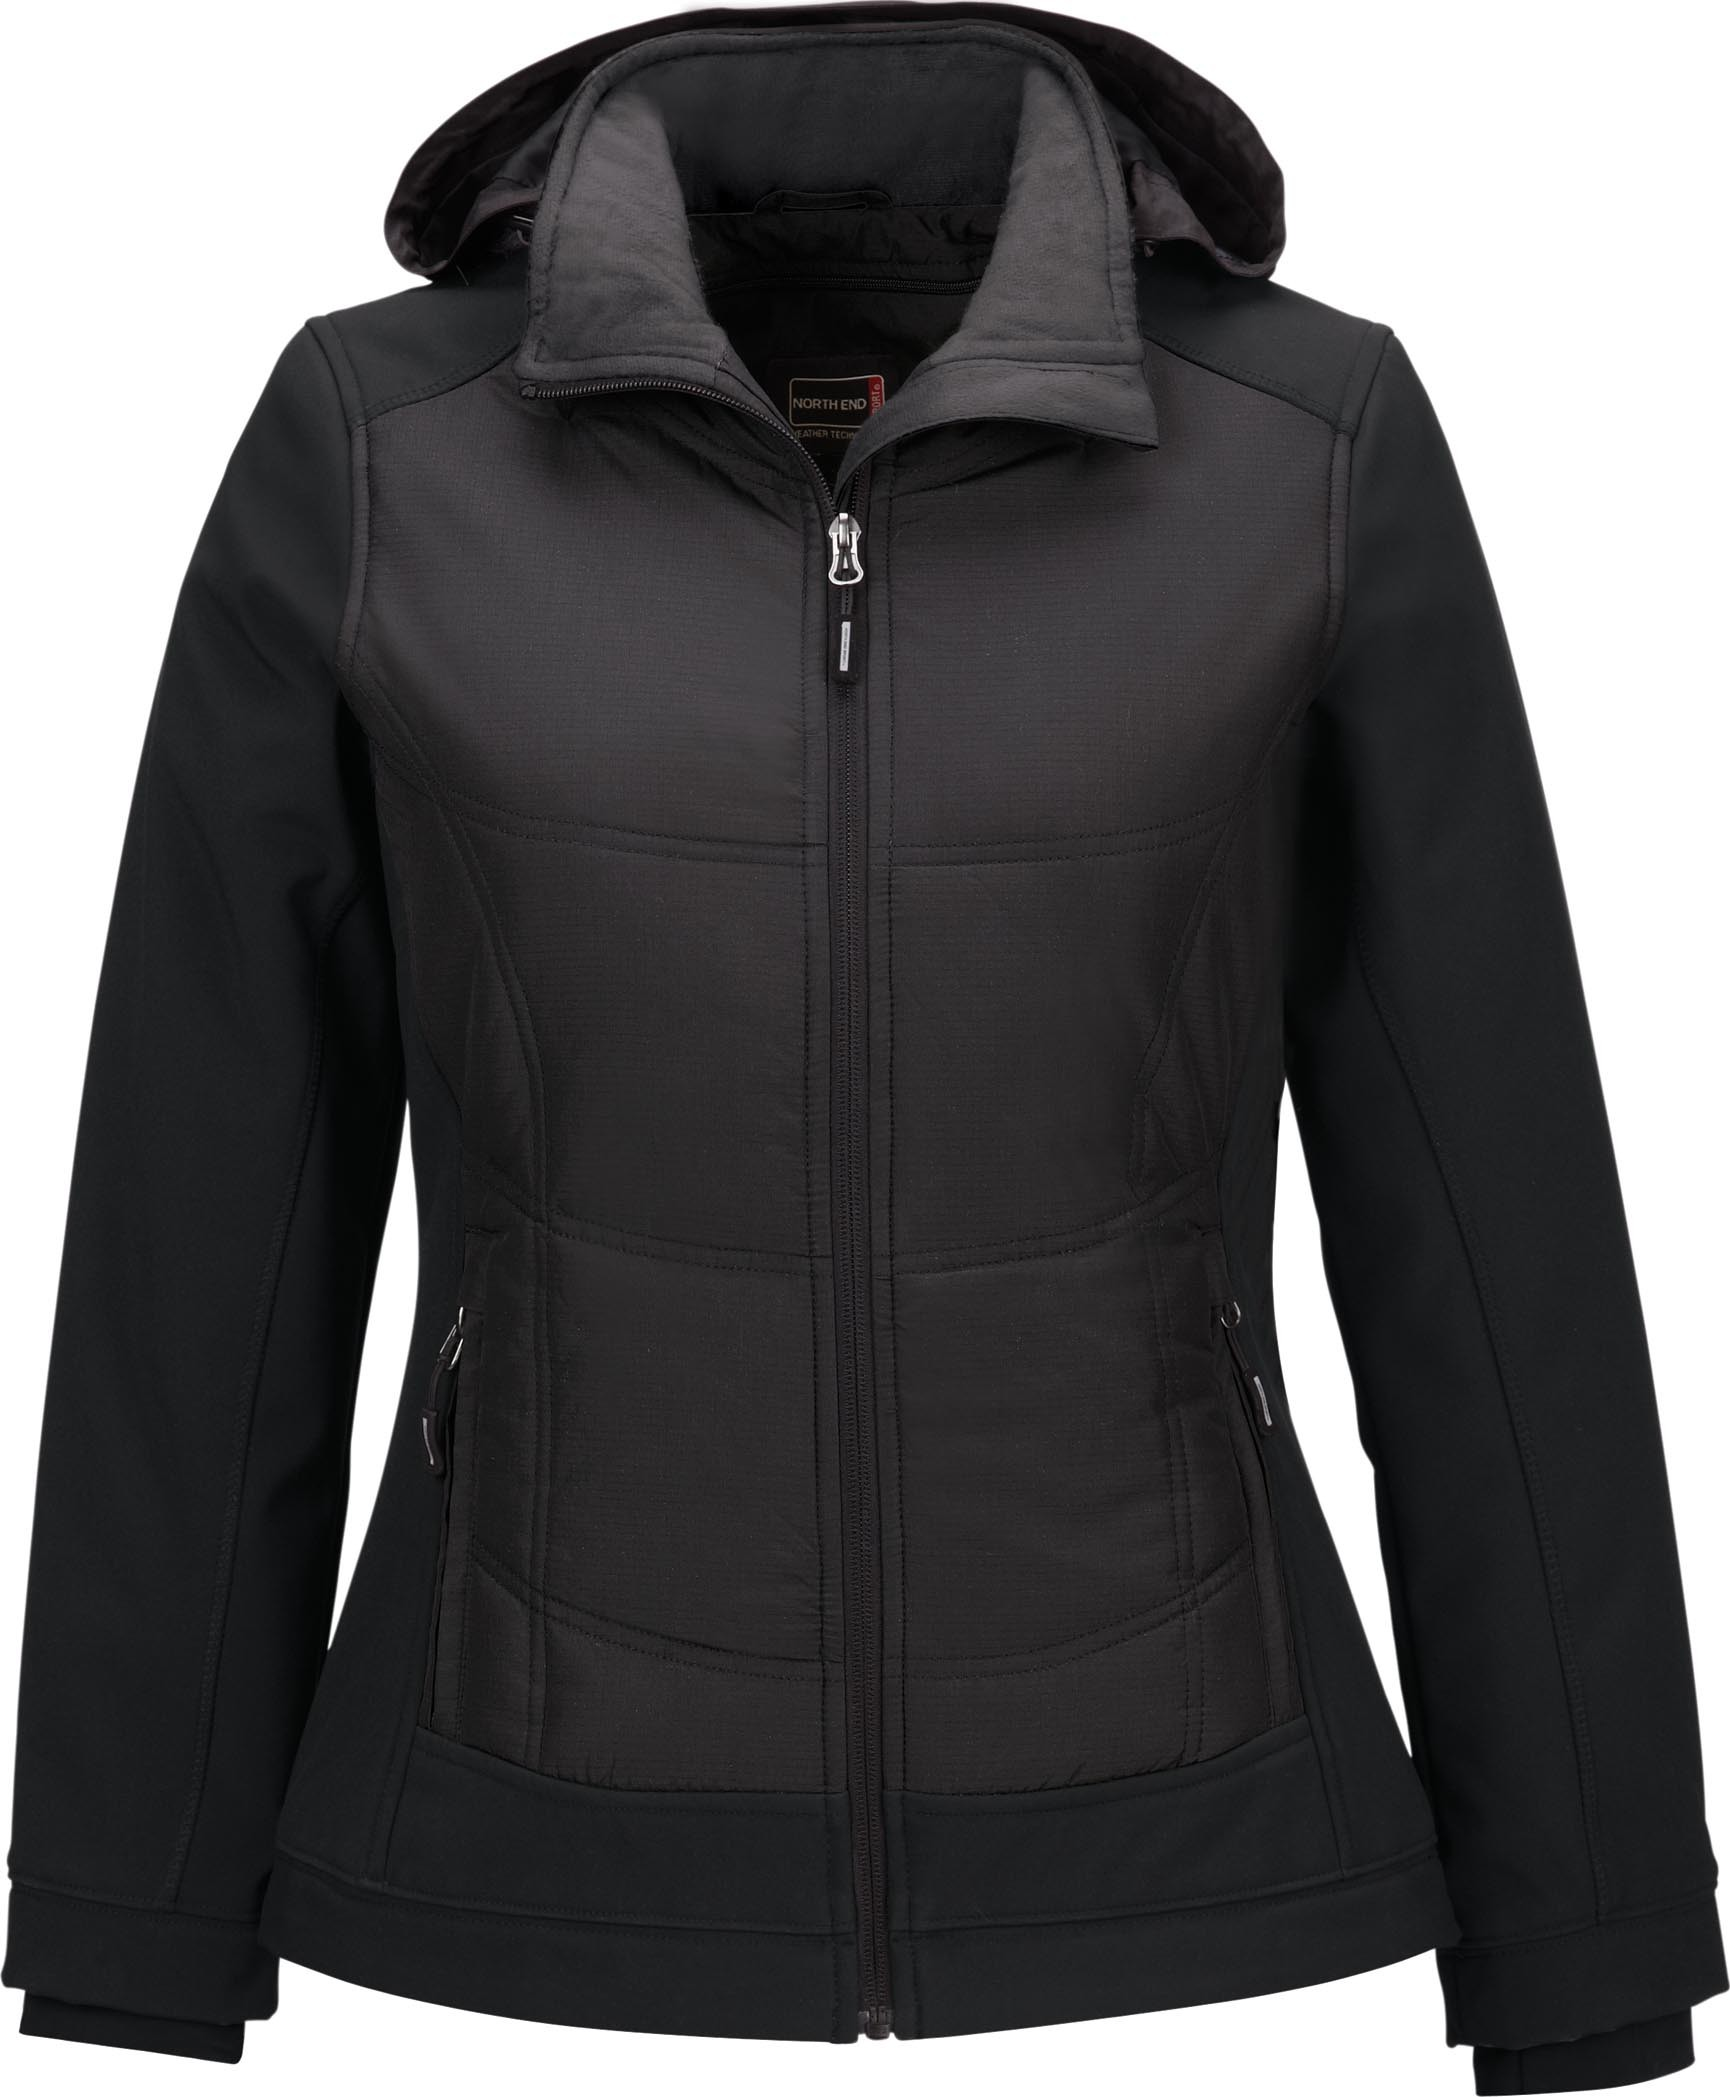 Ash City UTK 2 Warm.Logik 78661 - Neo Ladies' Insulated ...